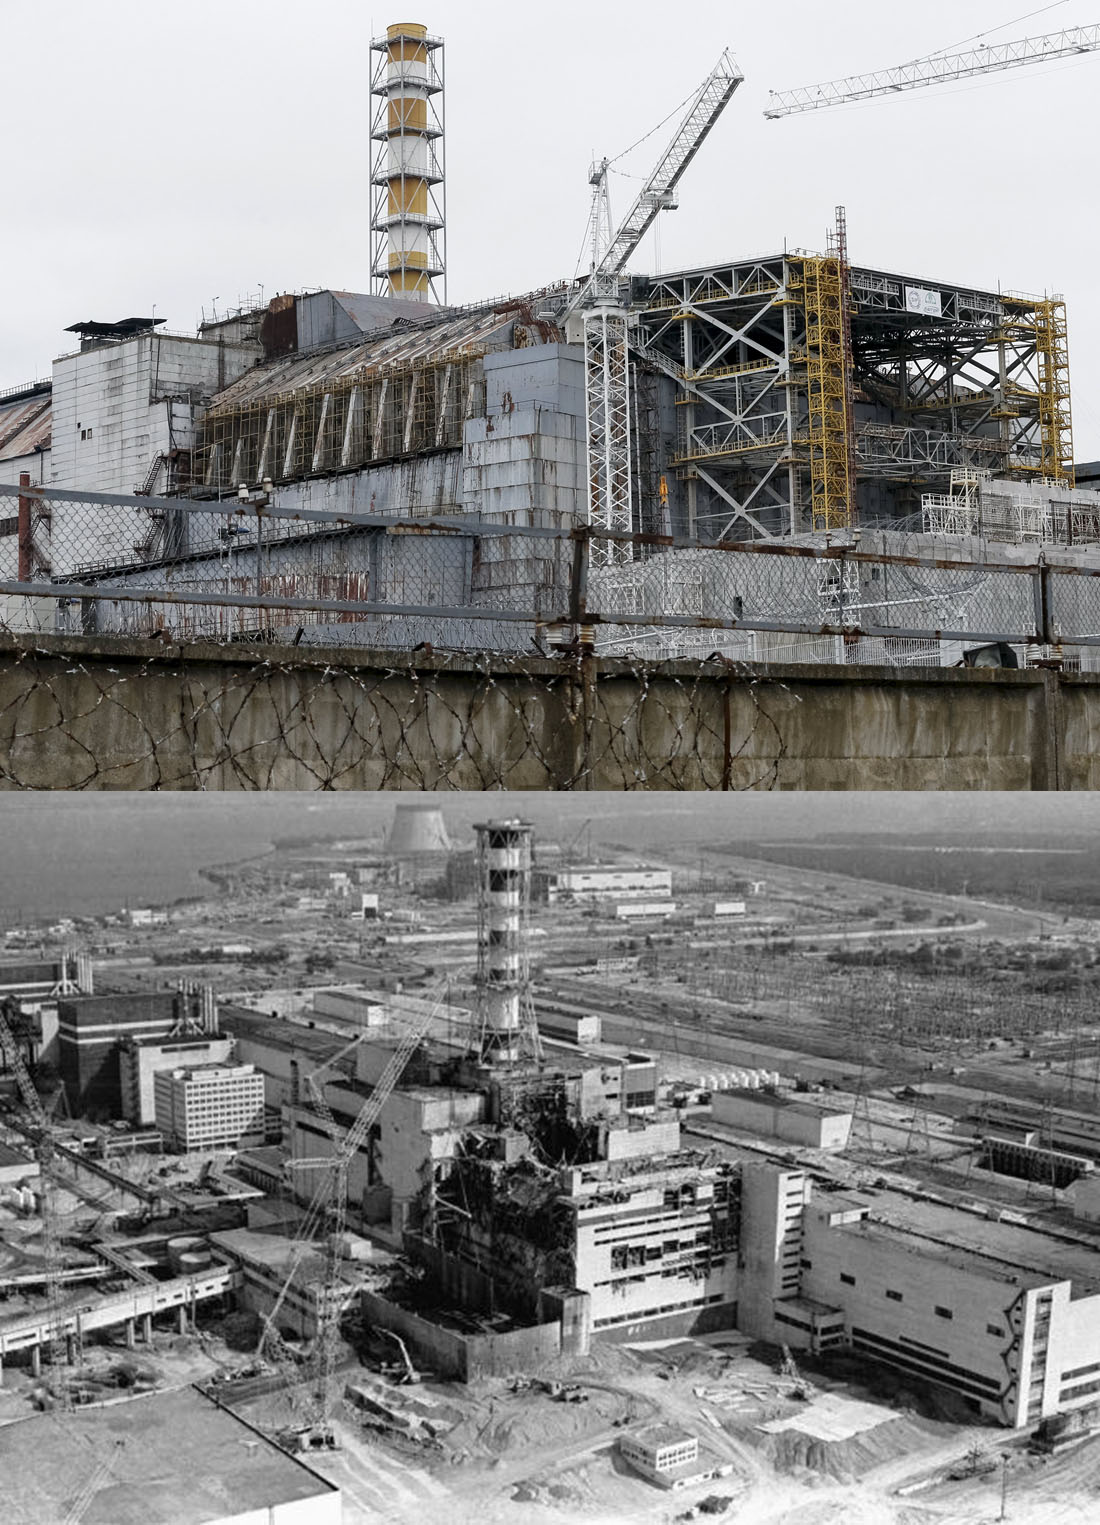 the chernobyl nuclear plant in ukraine Chernobyl disaster, accident in 1986 at the chernobyl nuclear power station in the soviet union, the worst disaster in the history of nuclear power generationthe chernobyl power station was situated at the settlement of pryp'yat, 10 miles (16 km) northwest of the city of chernobyl (ukrainian: chornobyl) and 65 miles (104 km) north of kiev, ukraine.